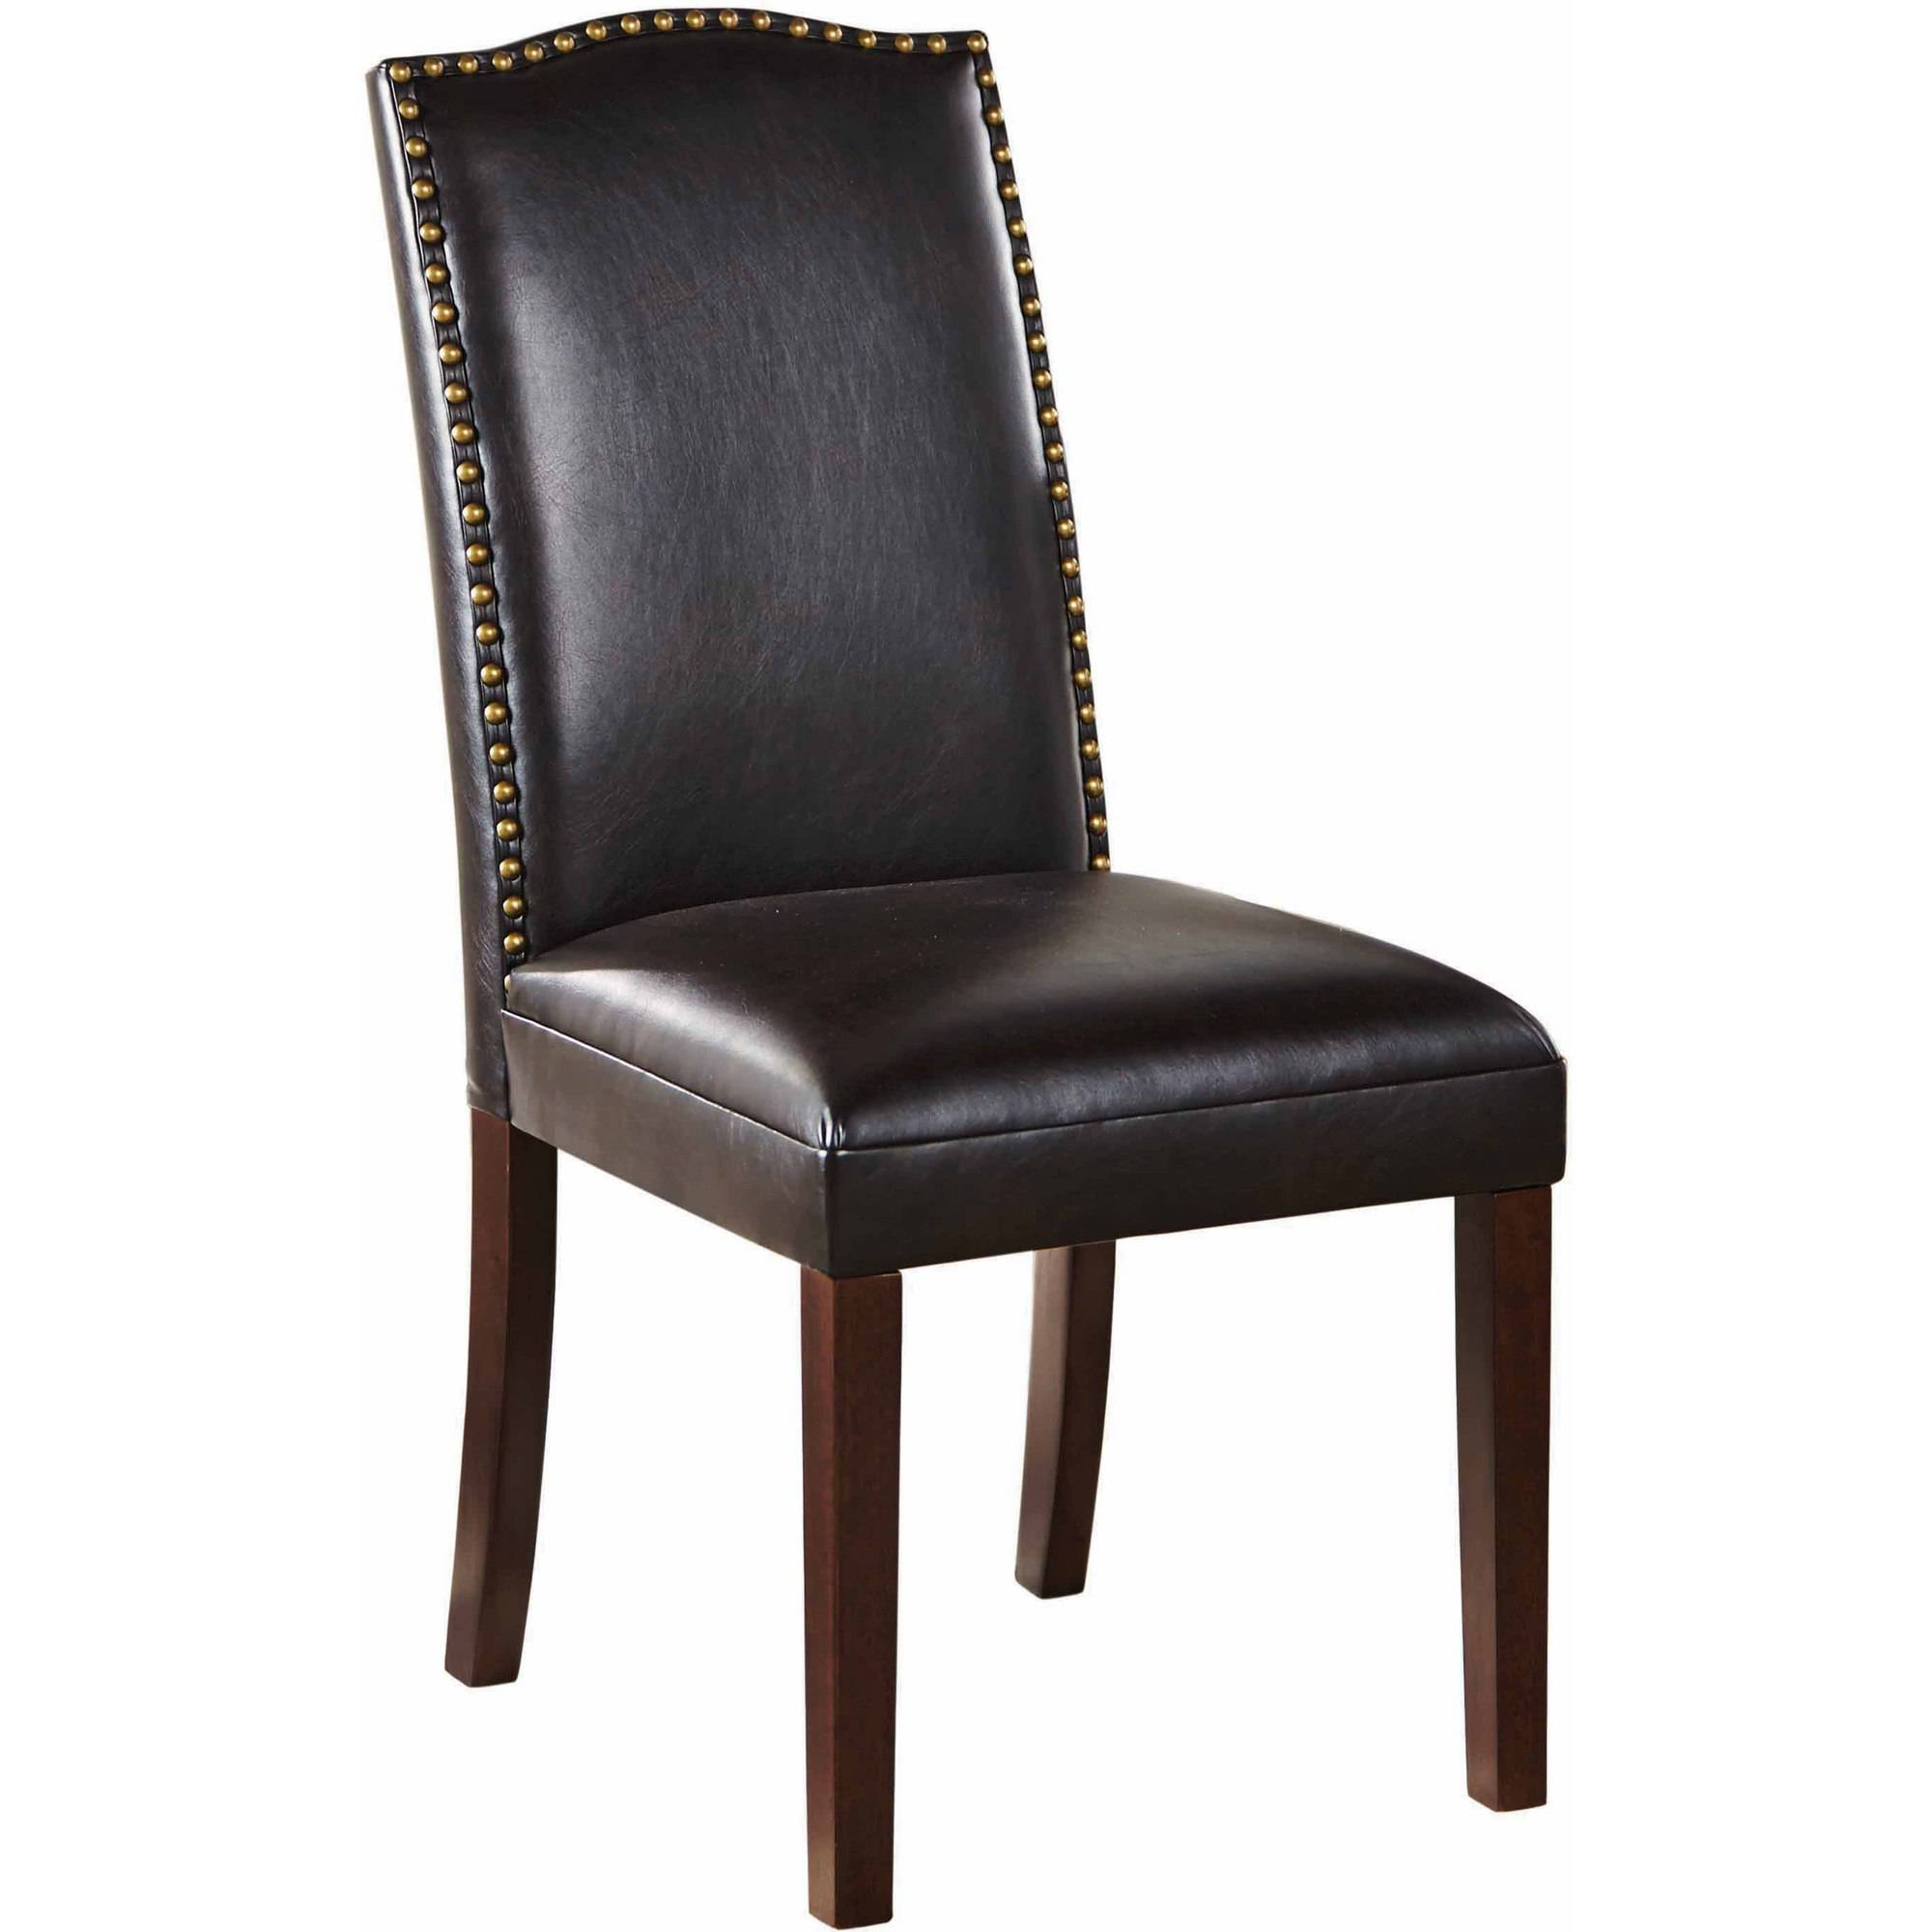 Faux Leather Accent Chair With Nailbead: Better Homes And Gardens Faux Leather Accent Chair With